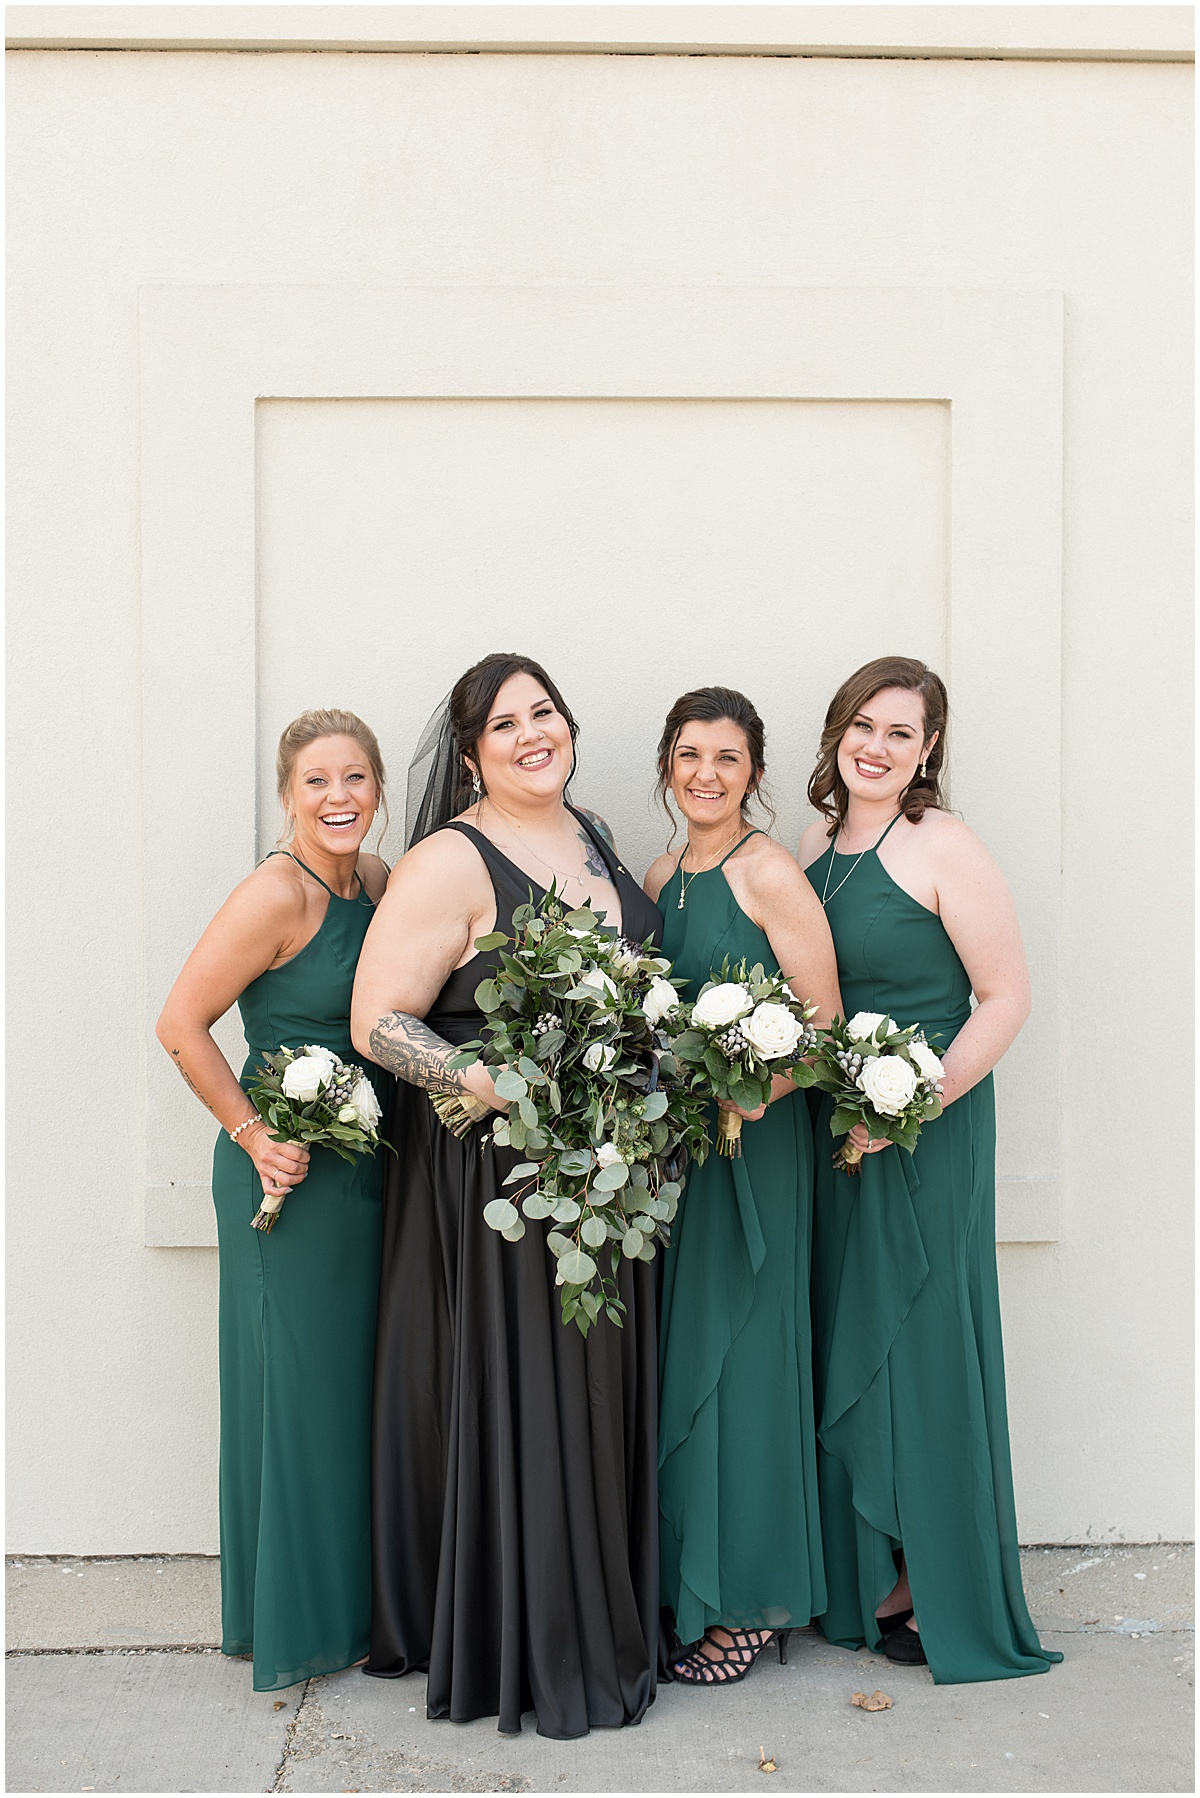 Bride wearing black wedding dress hanging with her bridesmaids